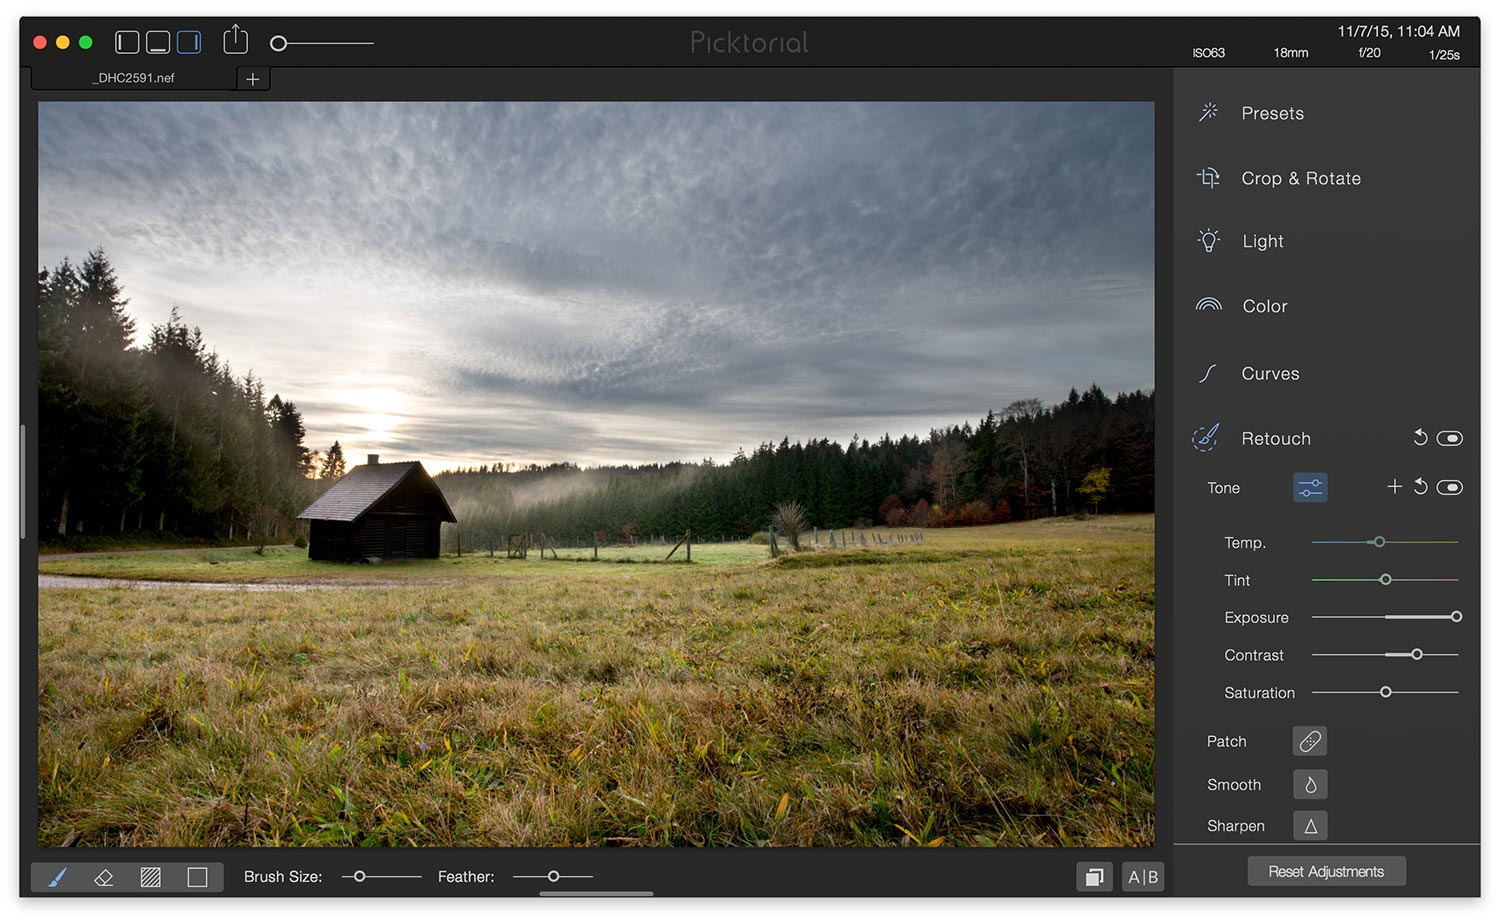 Picktorial - Making Top-Notch Landscape Photos